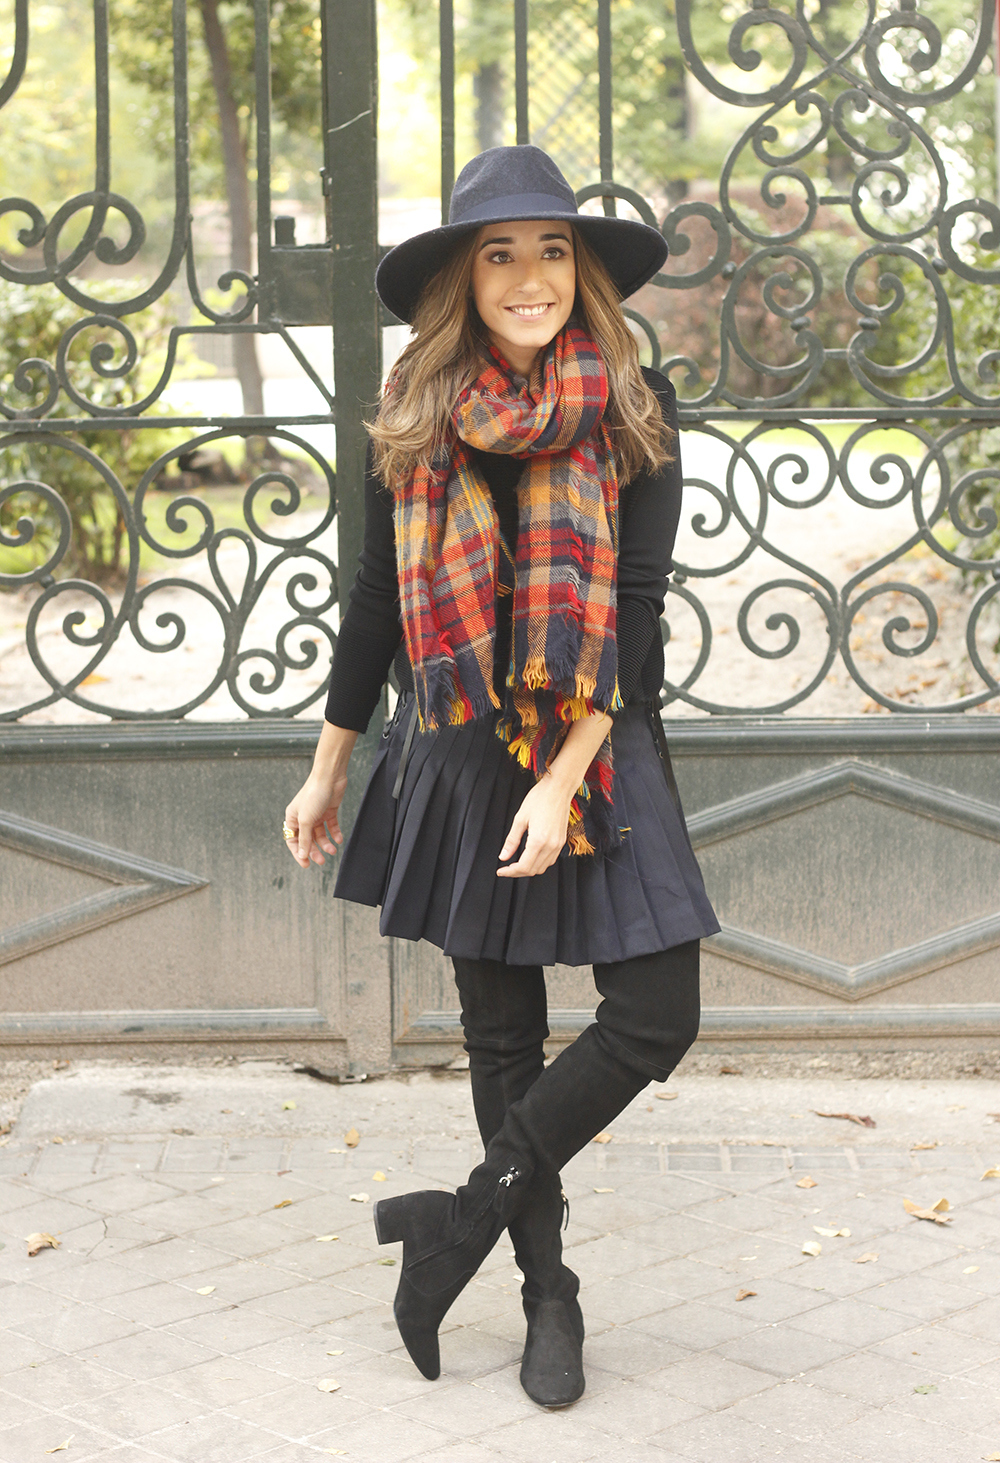 blue pleated skirt with over the knee boots blue hat black jersey outfit style 02